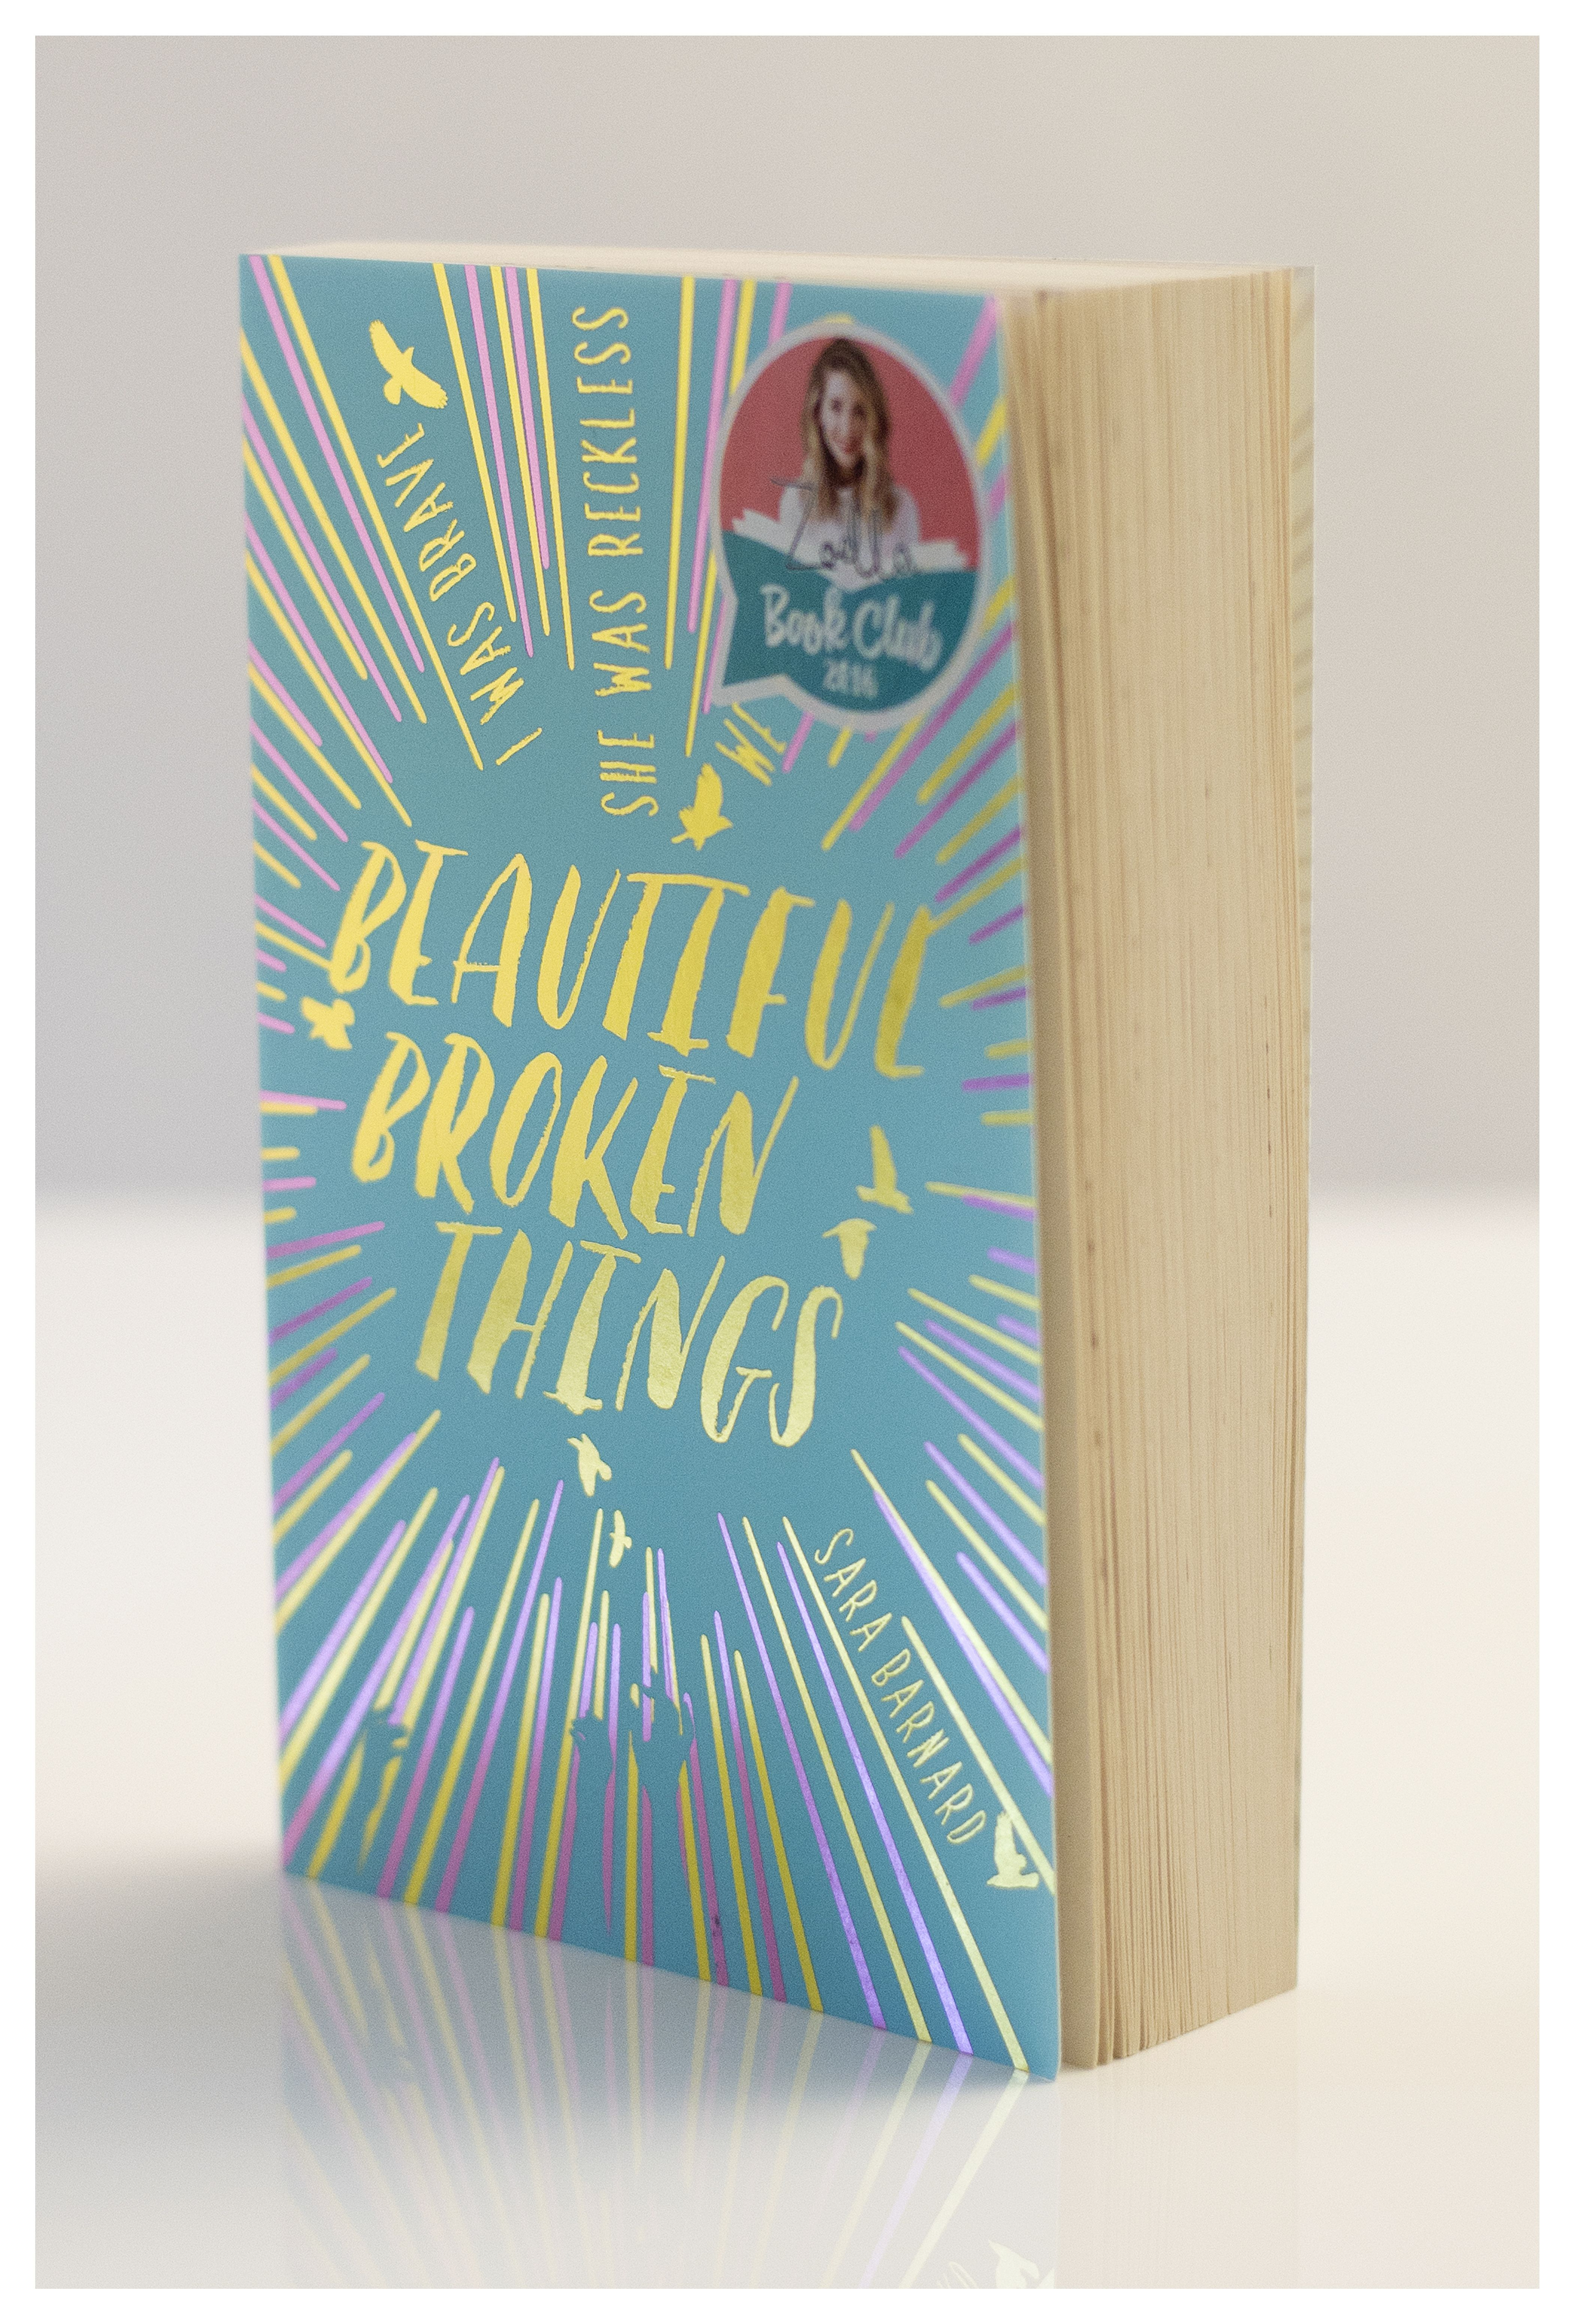 Here is the exclusive whsmith cover of beautiful broken things for 5 critical copywriting components solutioingenieria Images